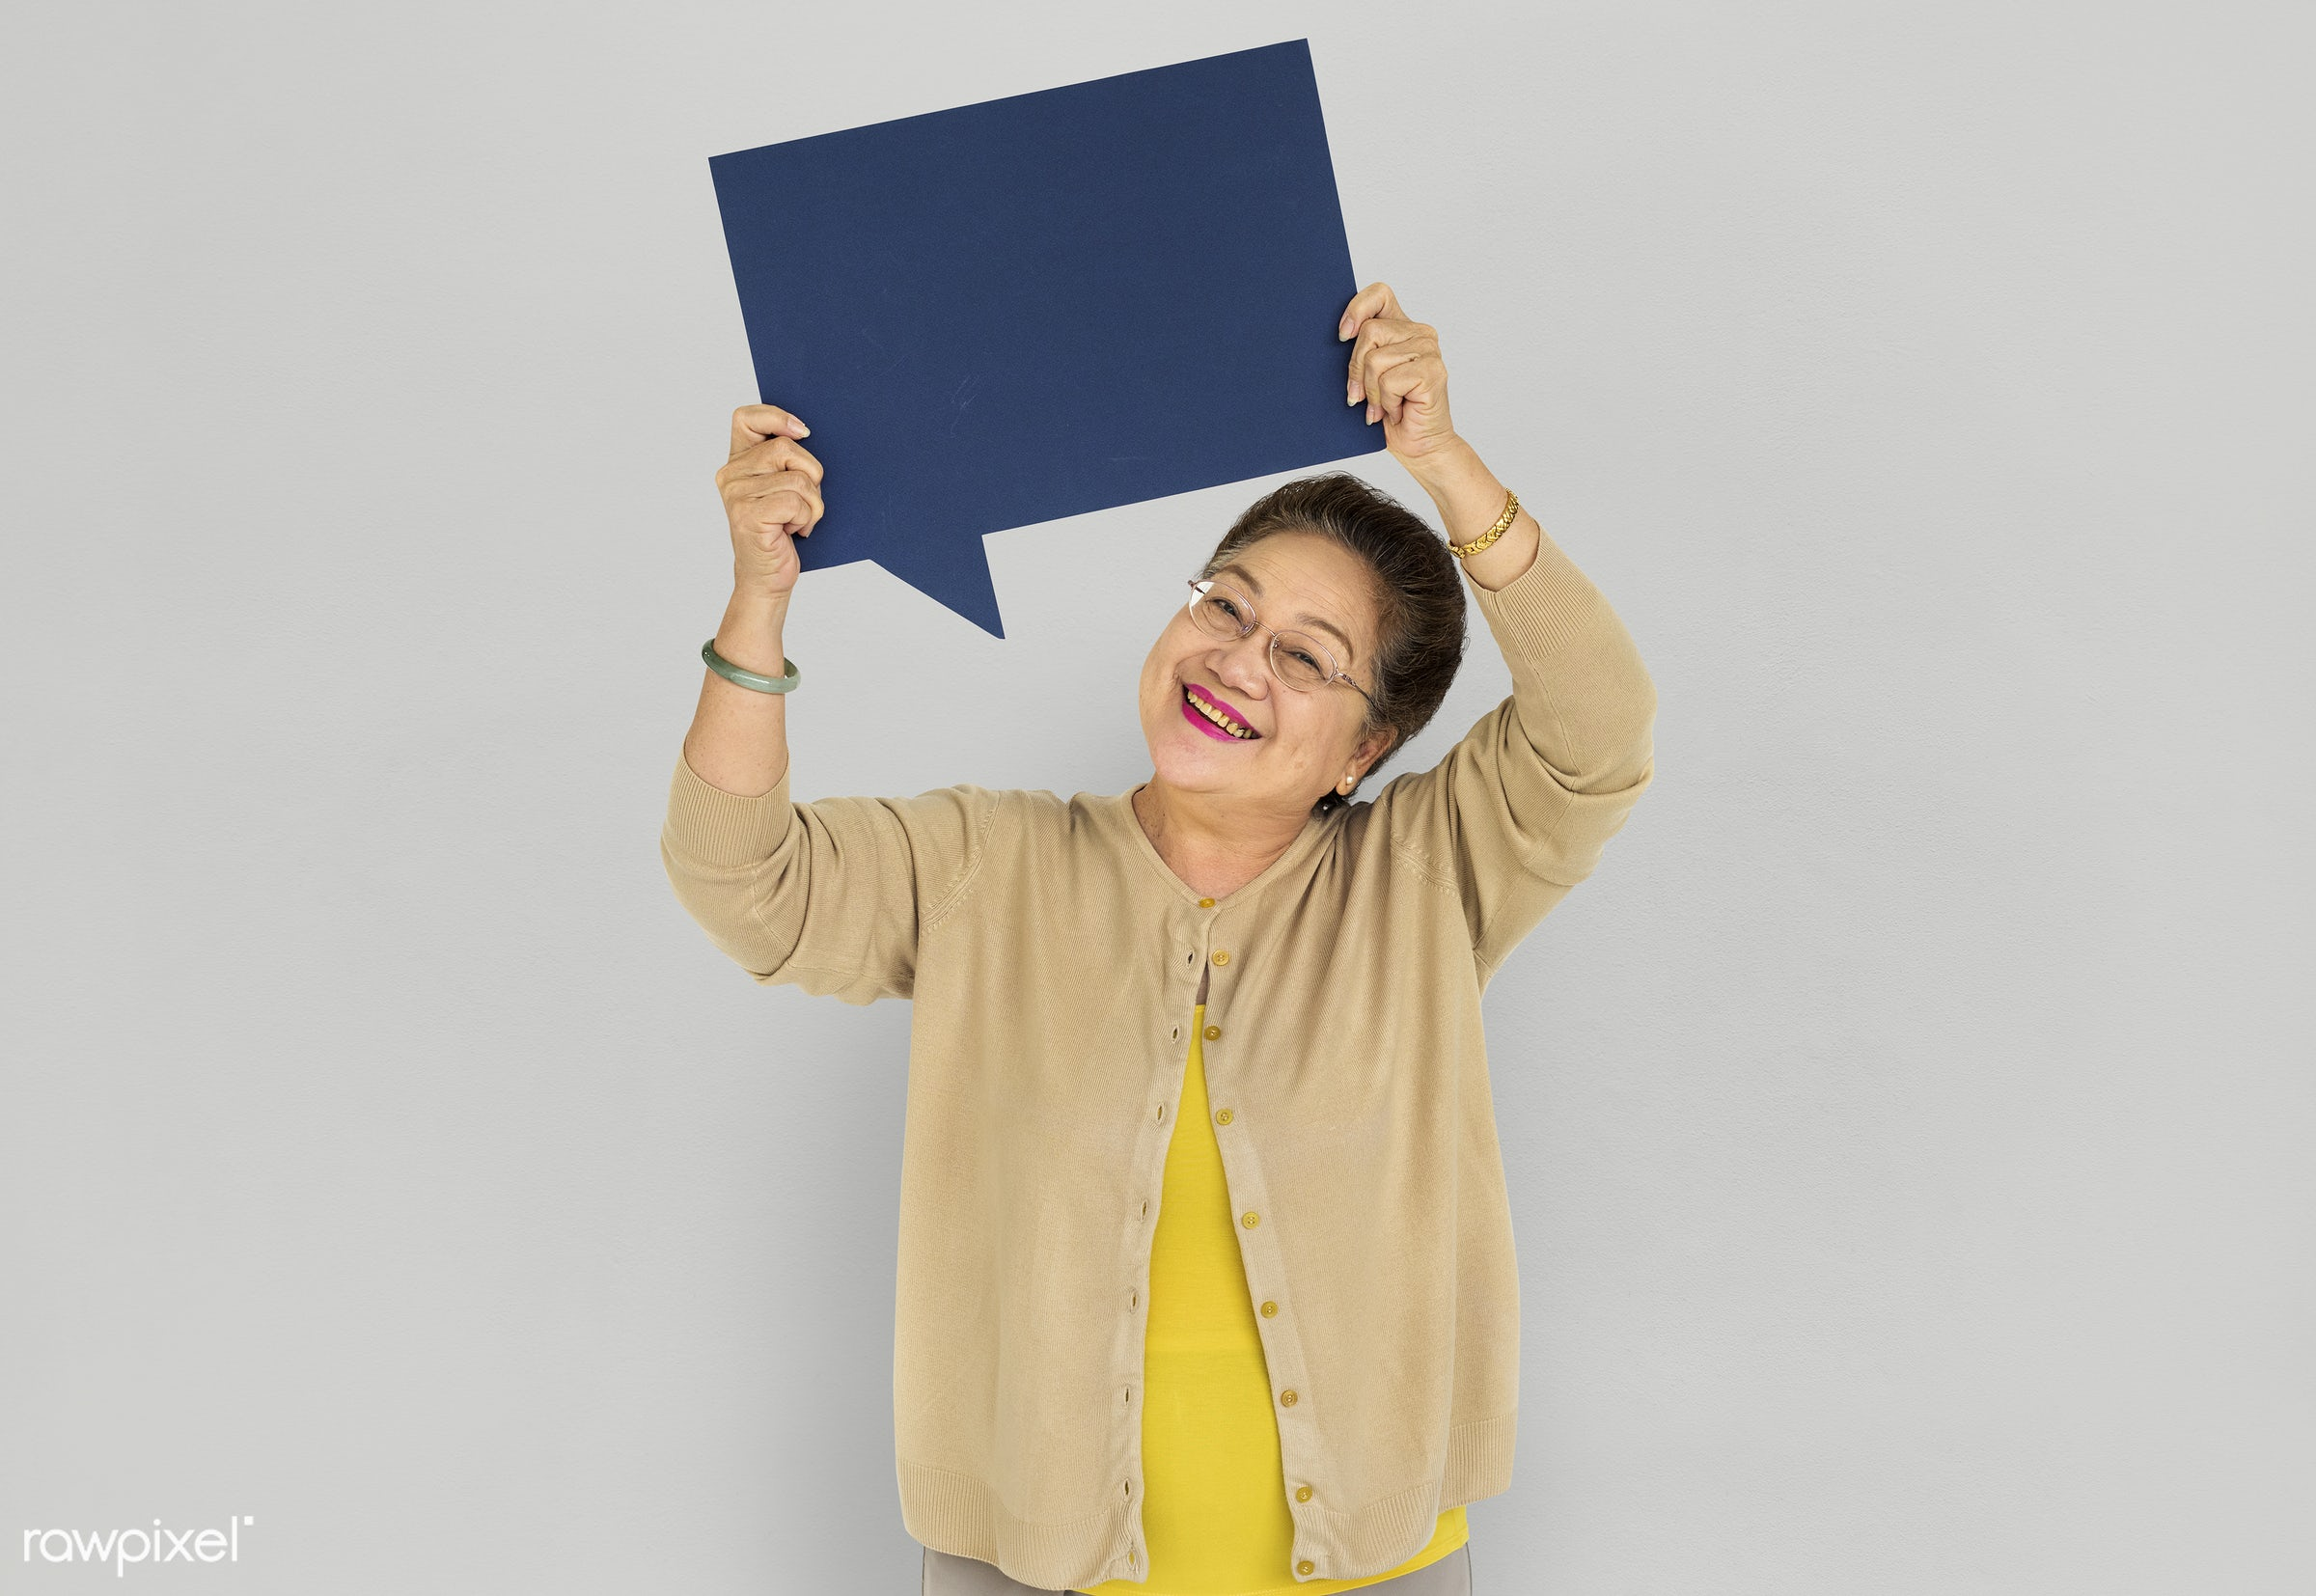 studio, expression, person, old, holding, hilarious, people, woman, speech bubble, happy, casual, smiling, isolated, candid...